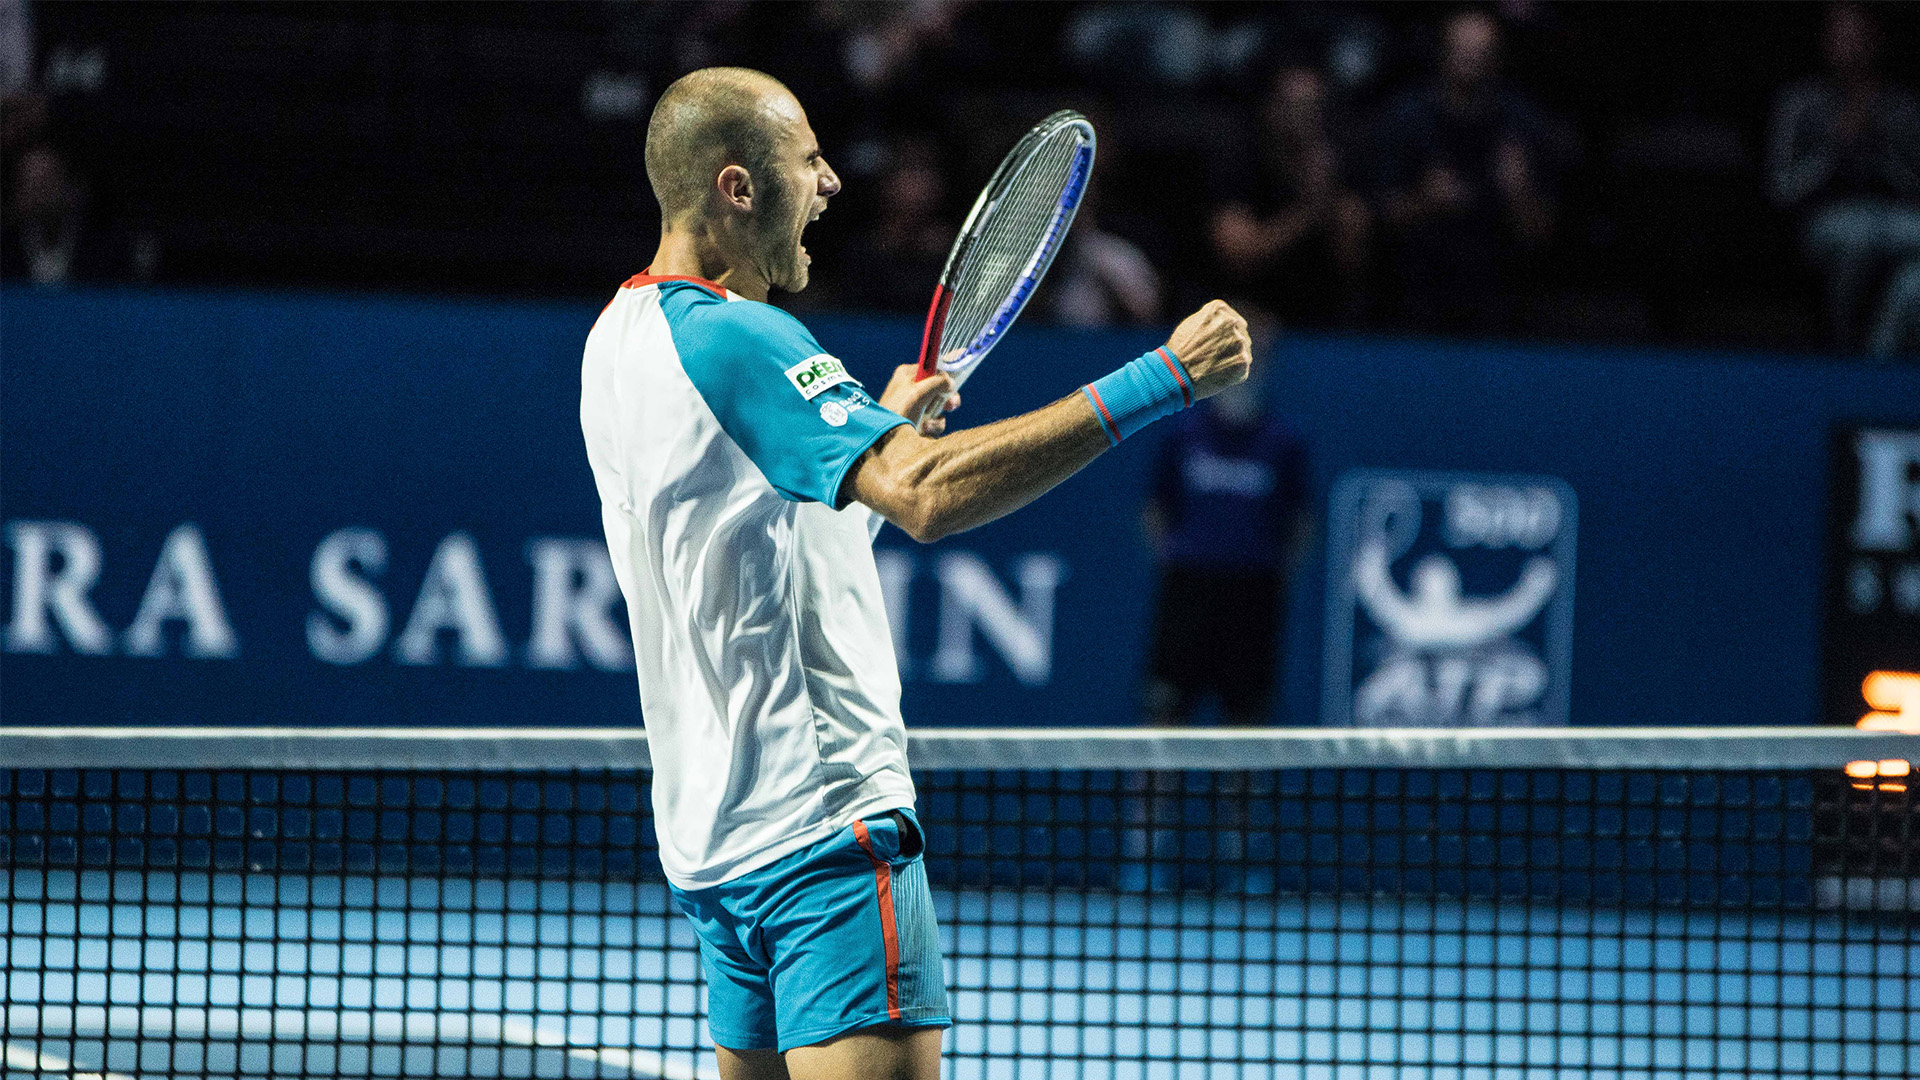 Marius Copil defeats Marin Cilic in the quarterfinals, in Basel